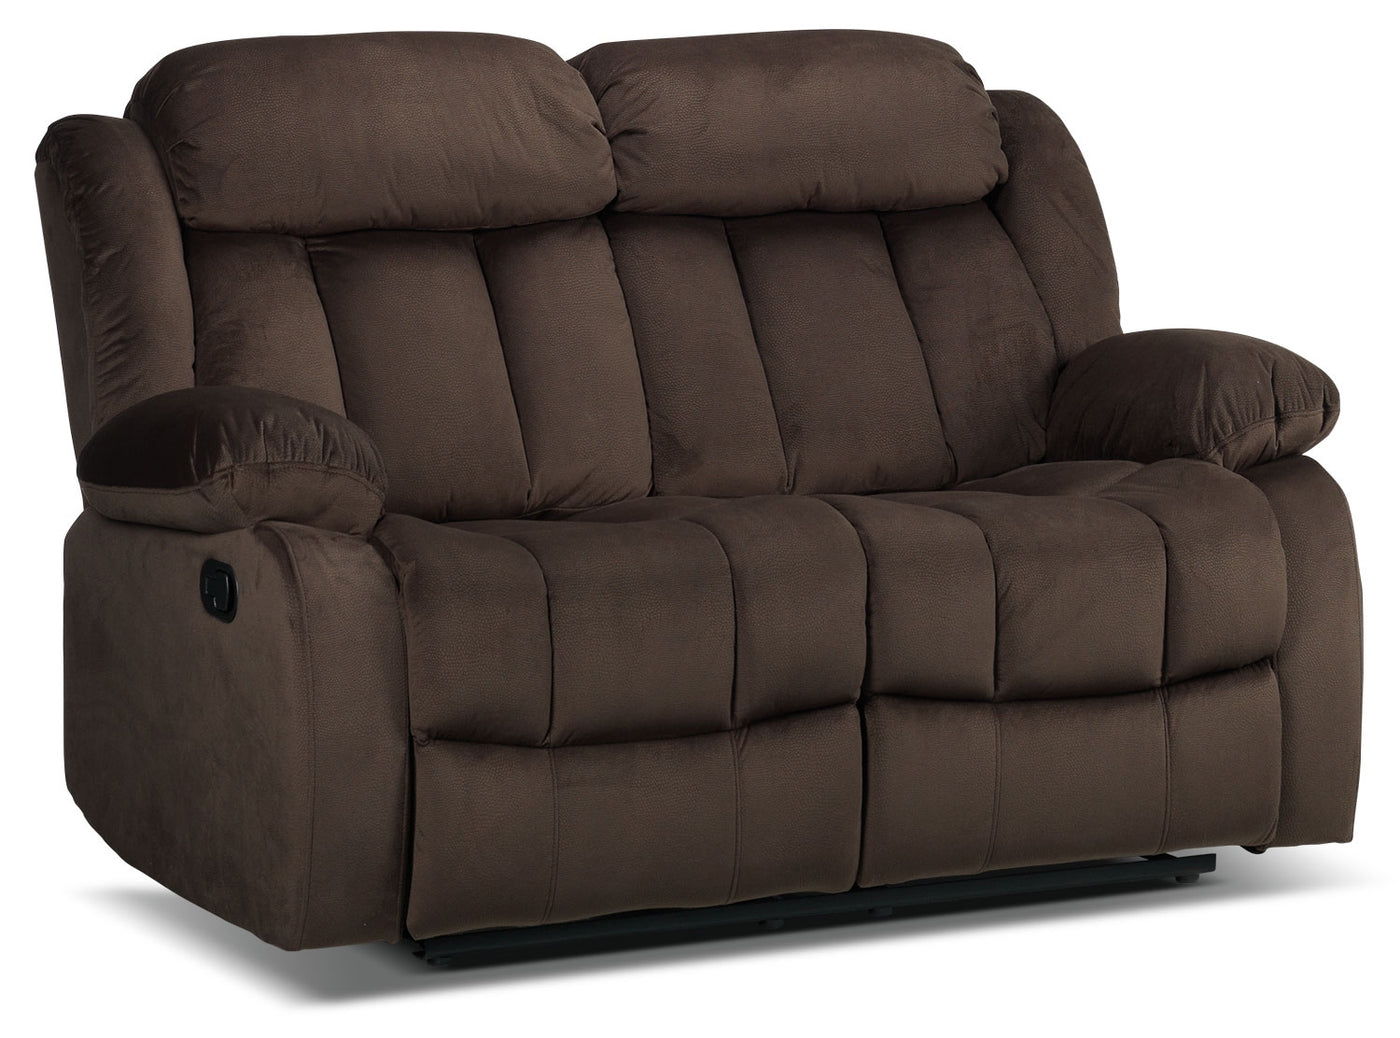 Fabulous Alabama Reclining Loveseat Deep Brown Gmtry Best Dining Table And Chair Ideas Images Gmtryco